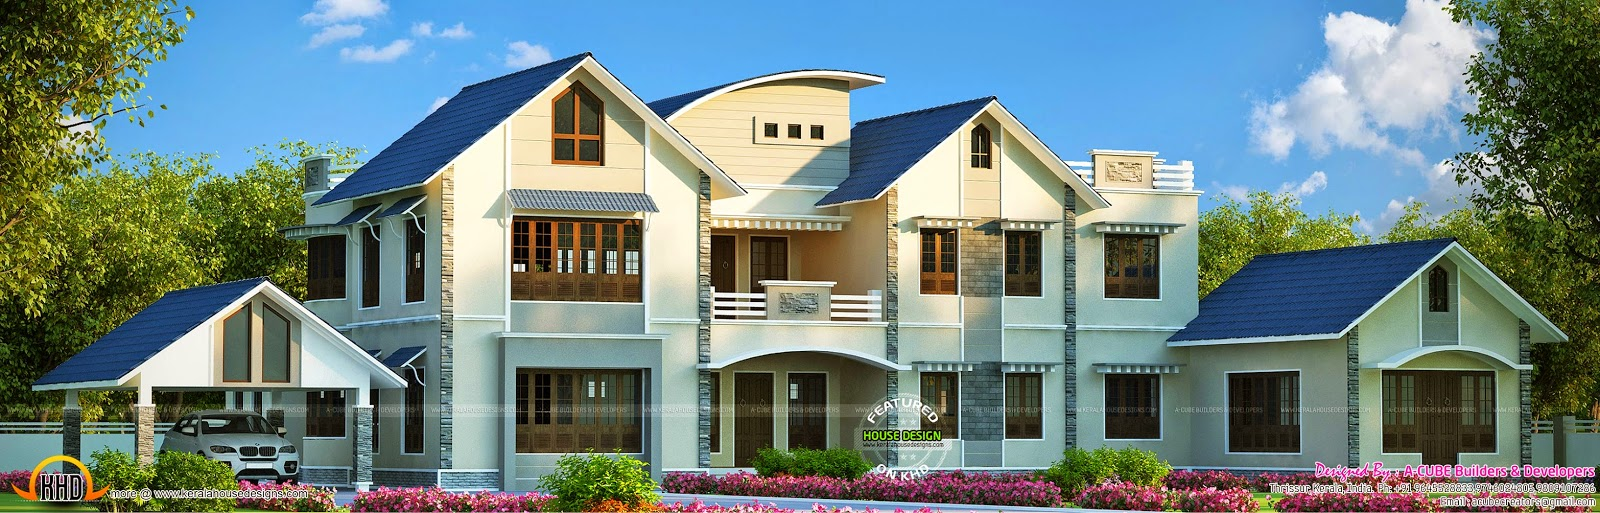 widely spread luxury house kerala home design and floor plans